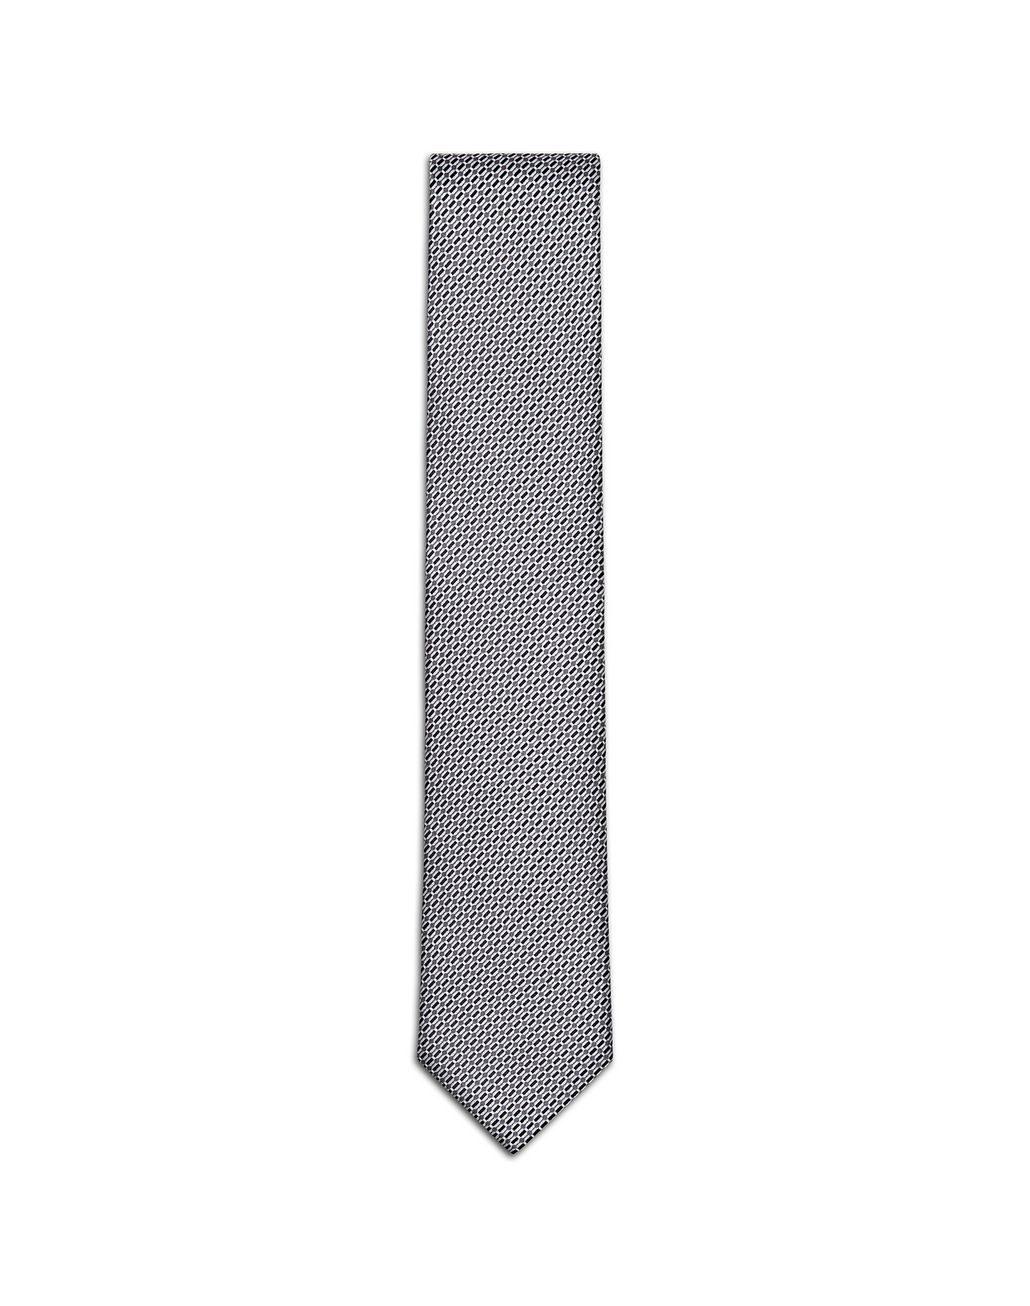 BRIONI Black and Gray Micro-Design Tie Tie & Pocket Square U f